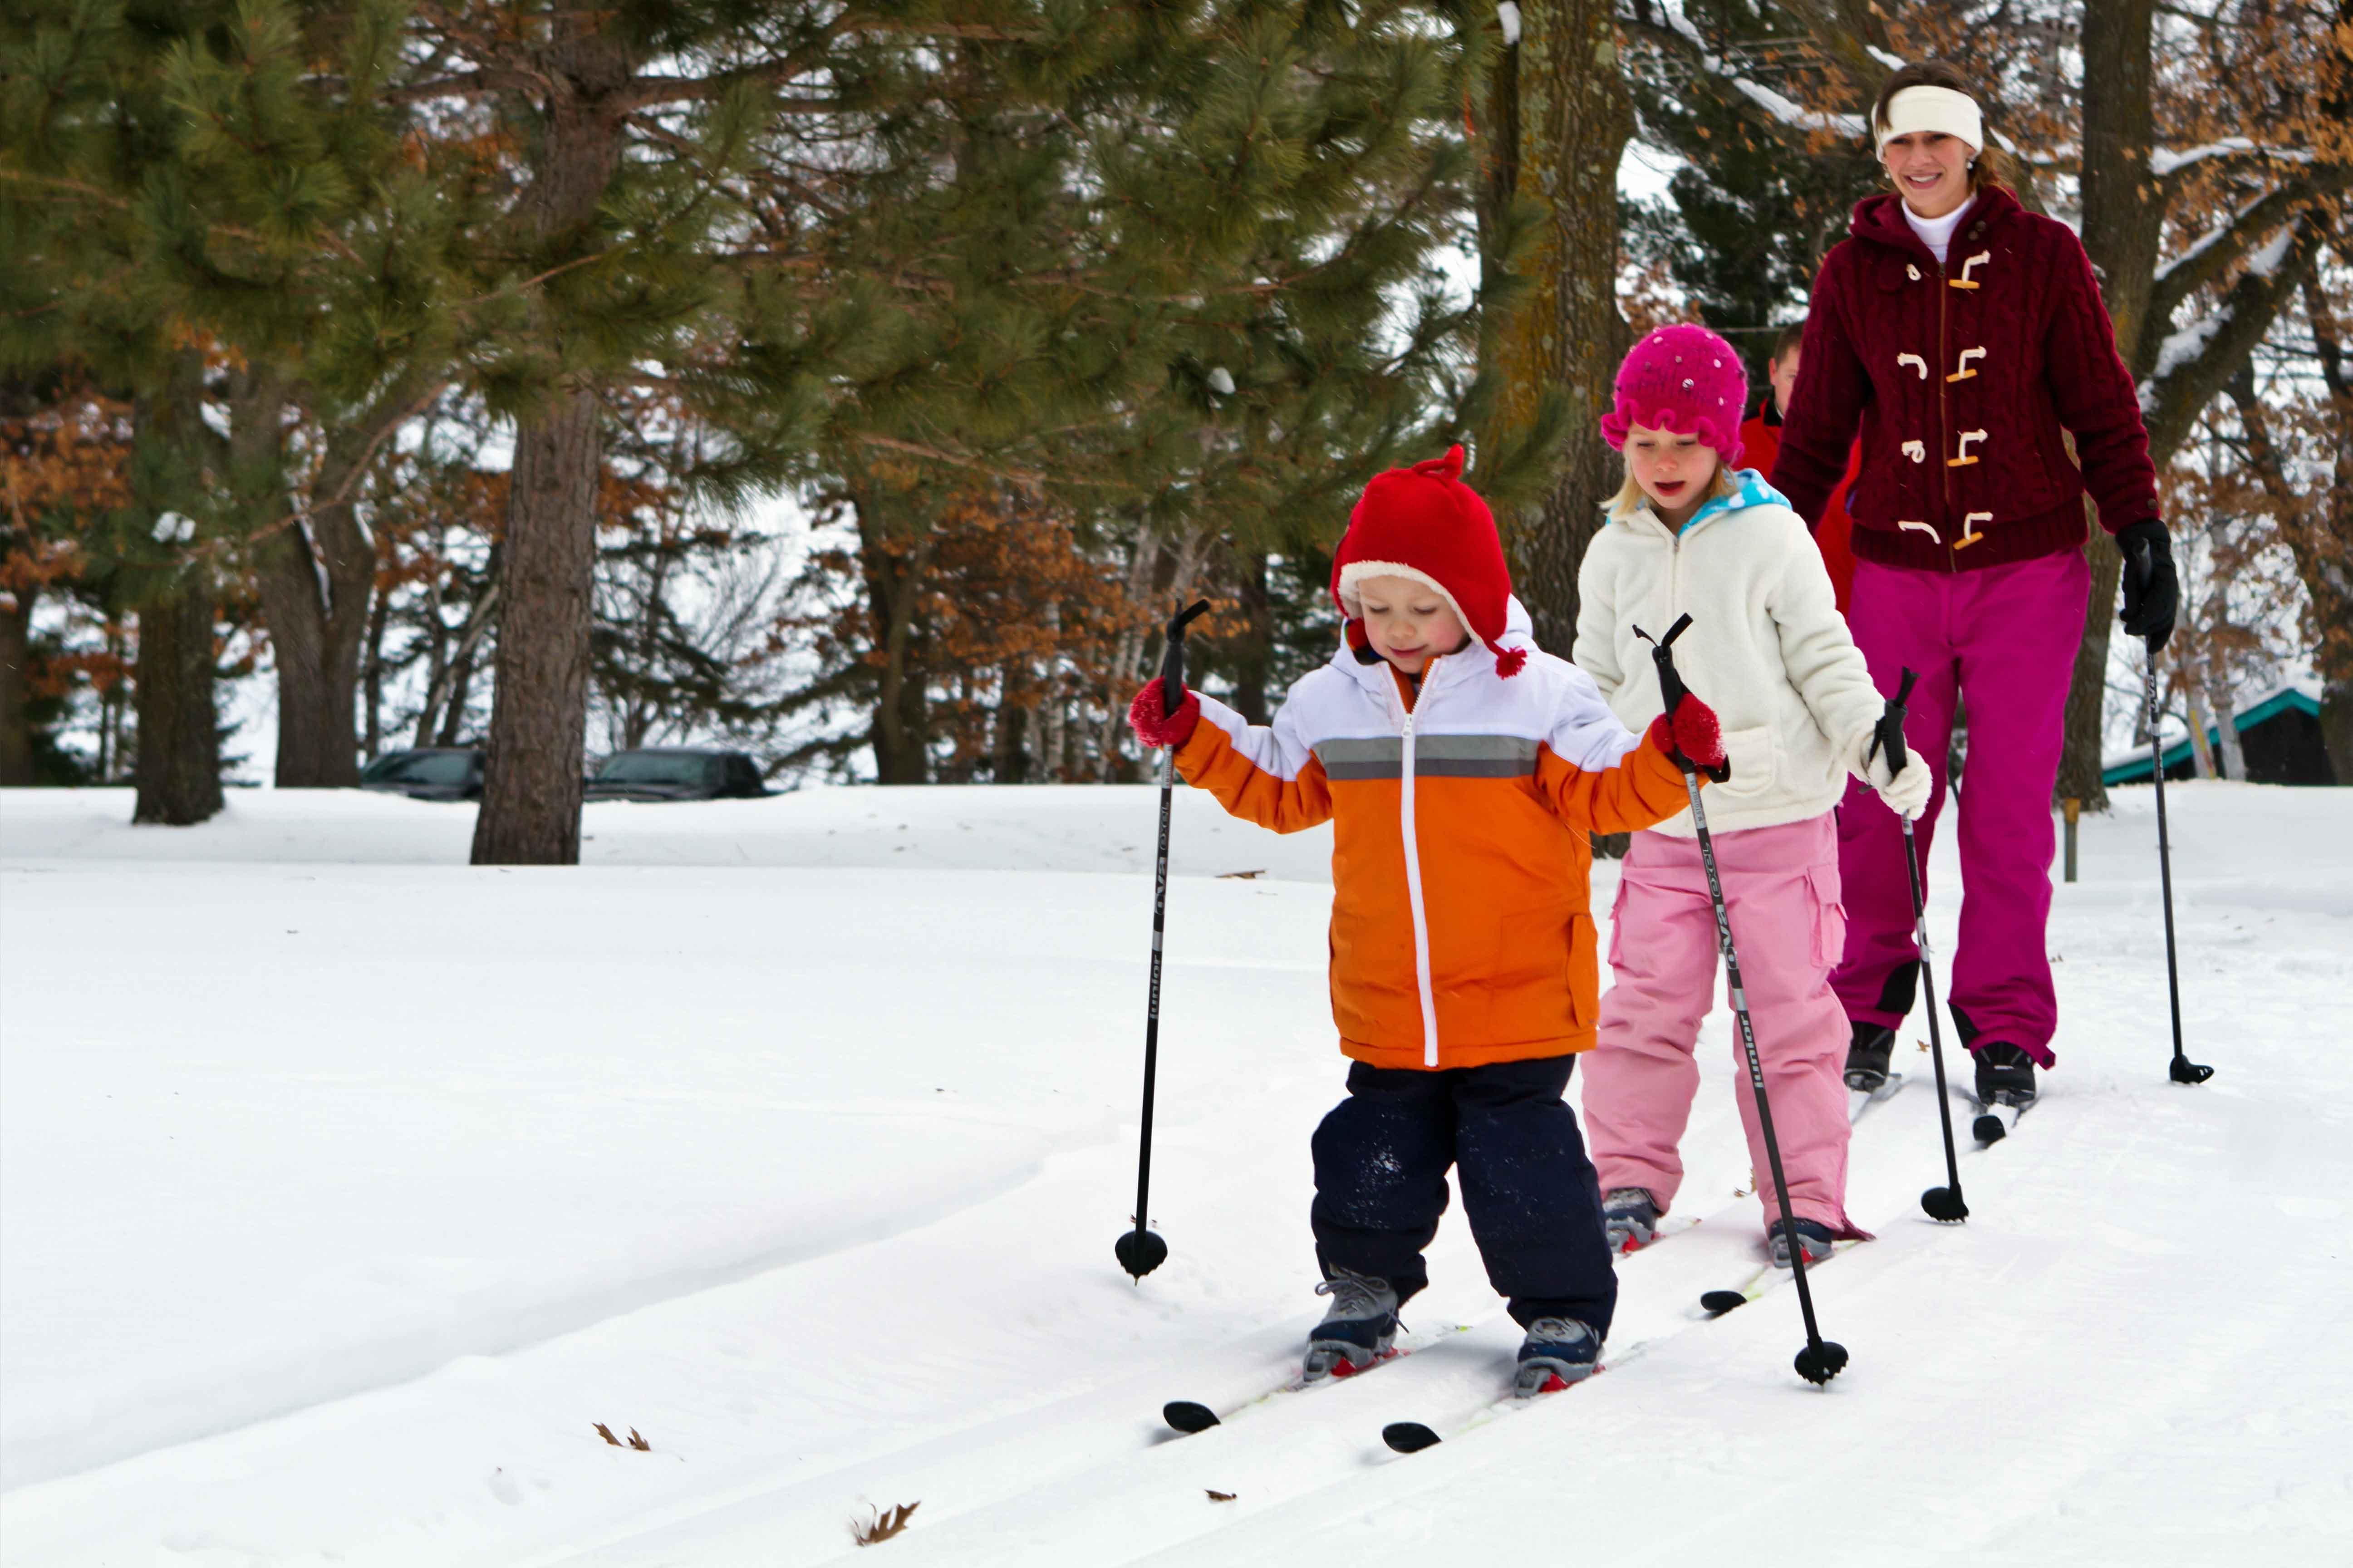 Cross-country skiing in Brainerd